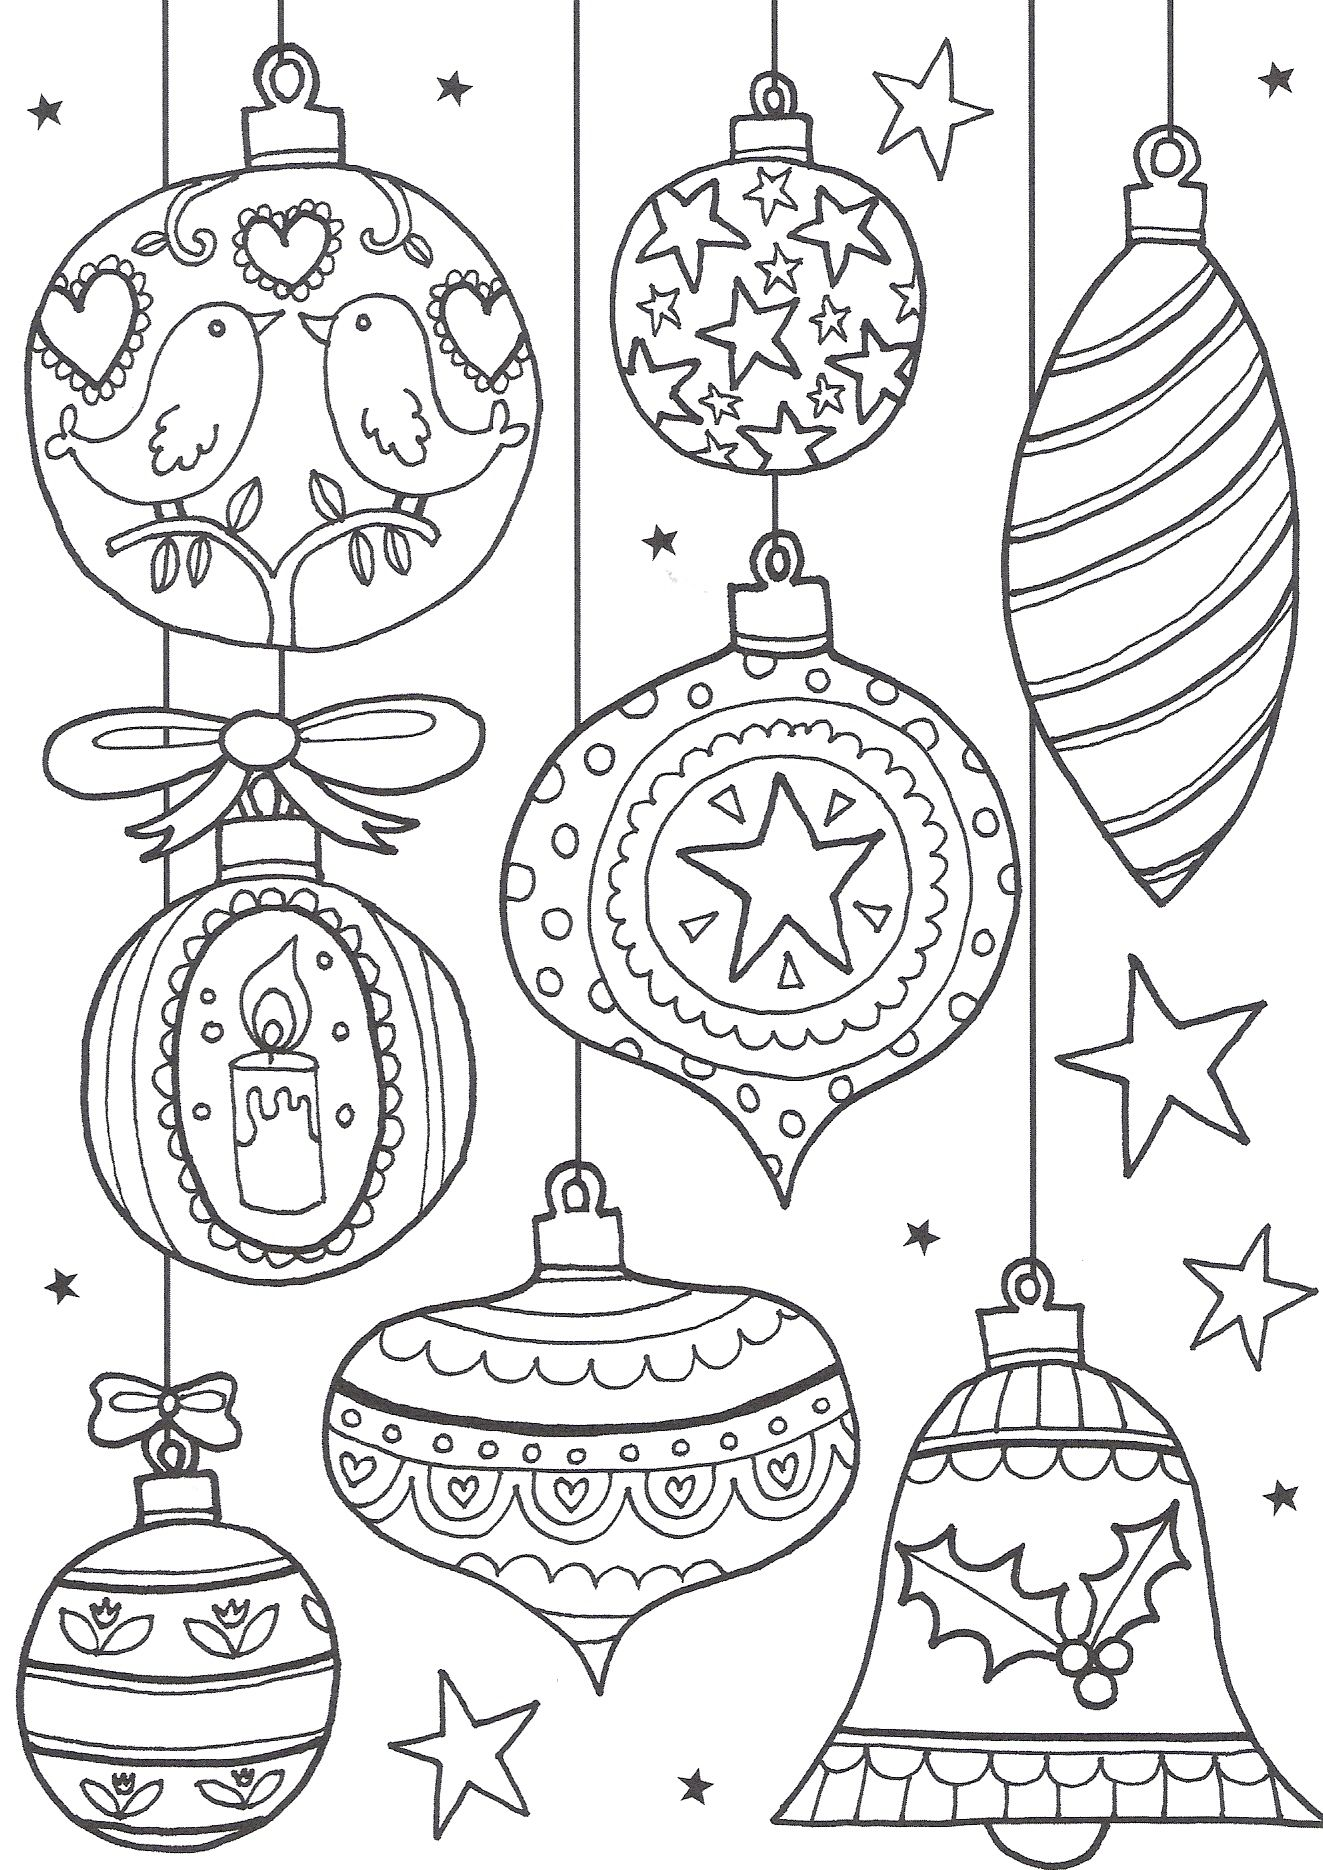 Christmas Coloring Images Free With Colouring Pages For Adults The Ultimate Roundup